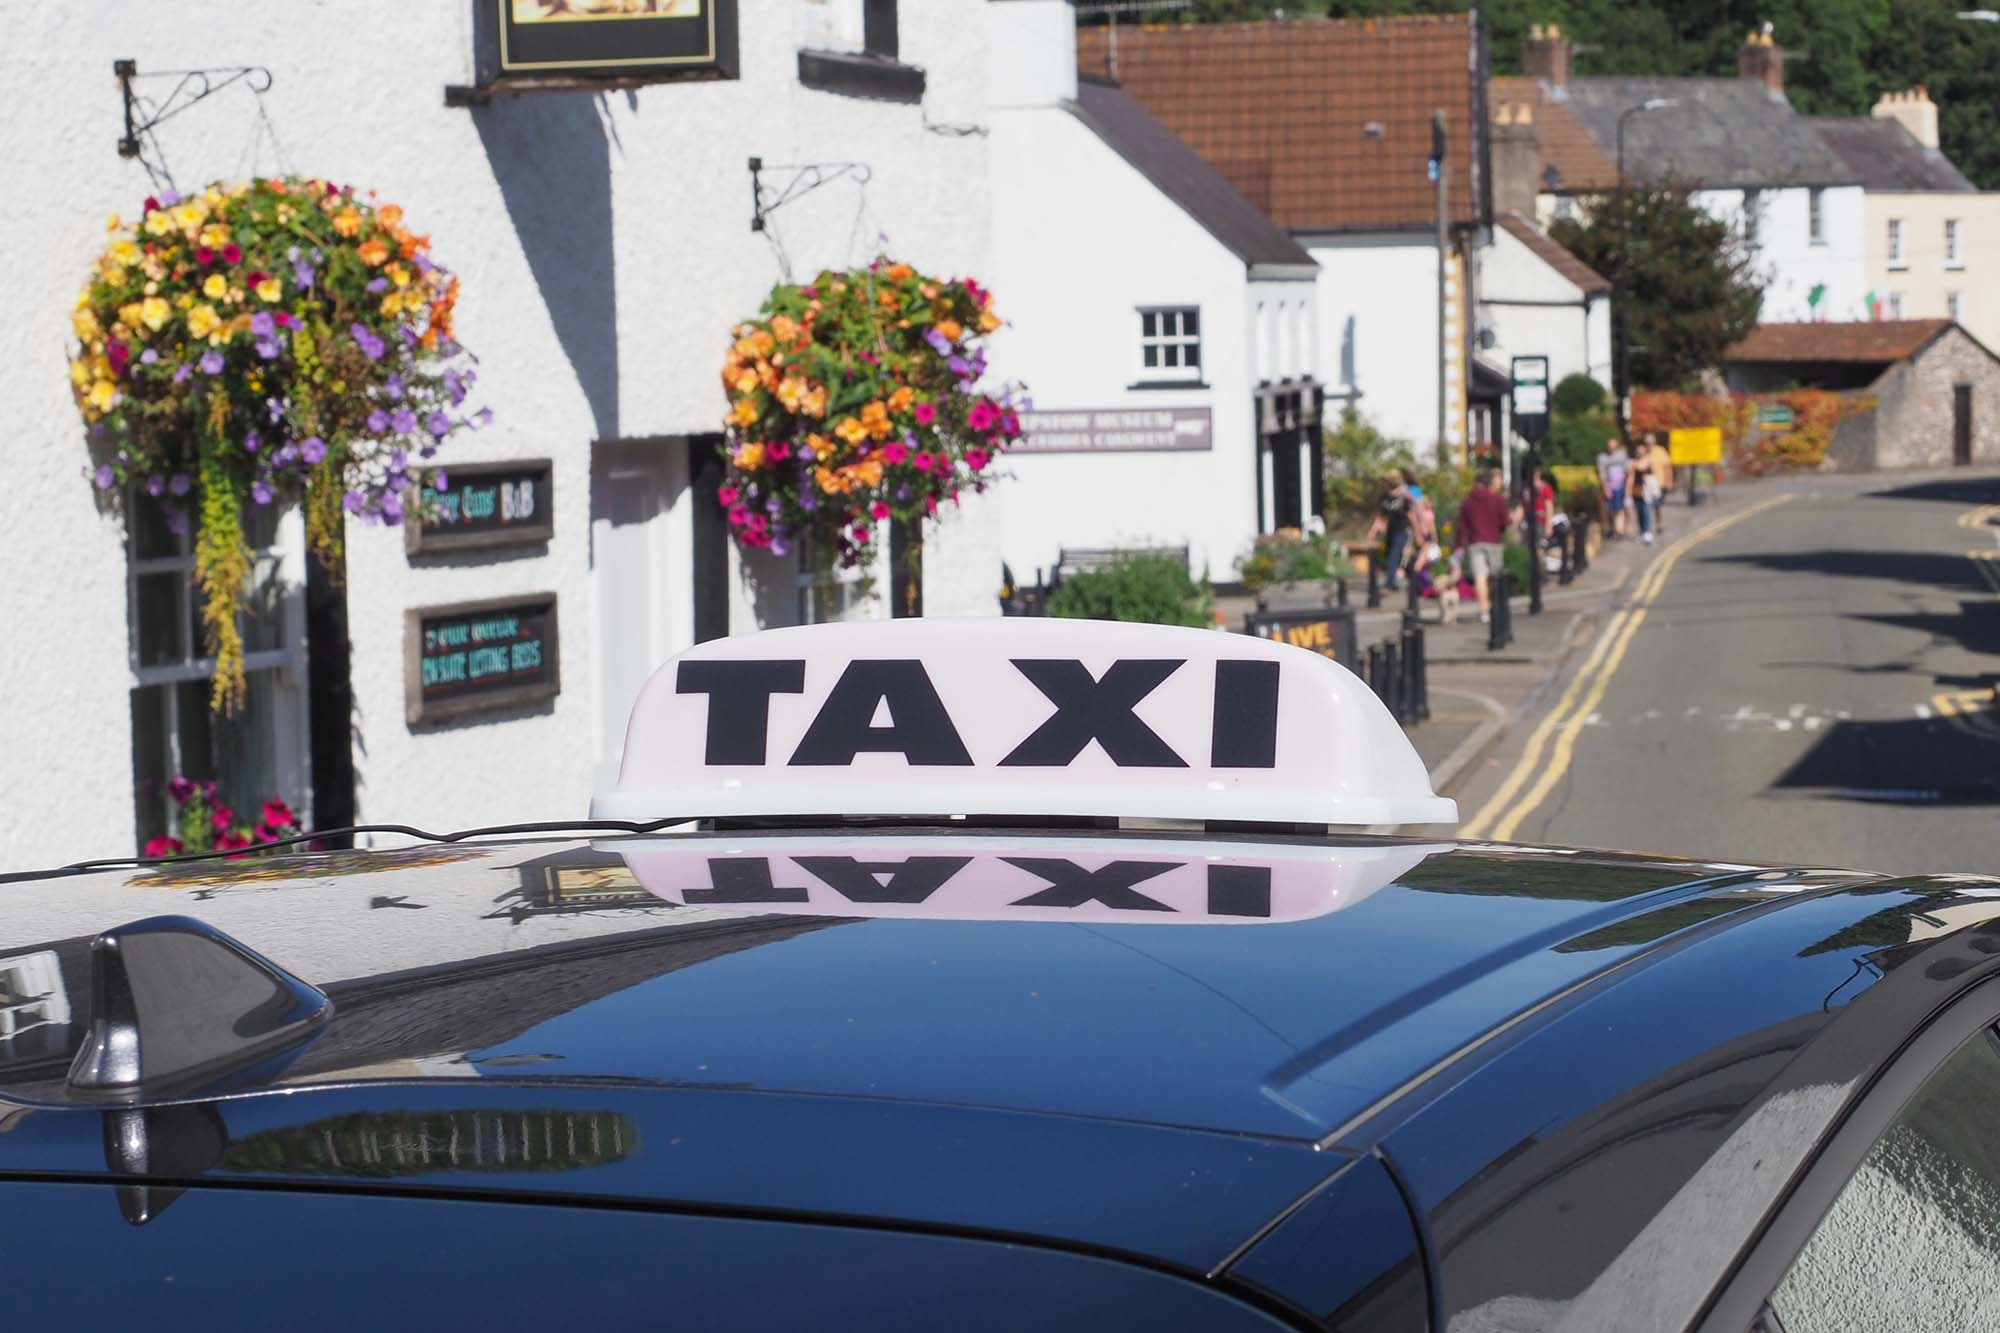 CHEPSTOW, UK - CIRCA SEPTEMBER 2019: taxi sign on a car